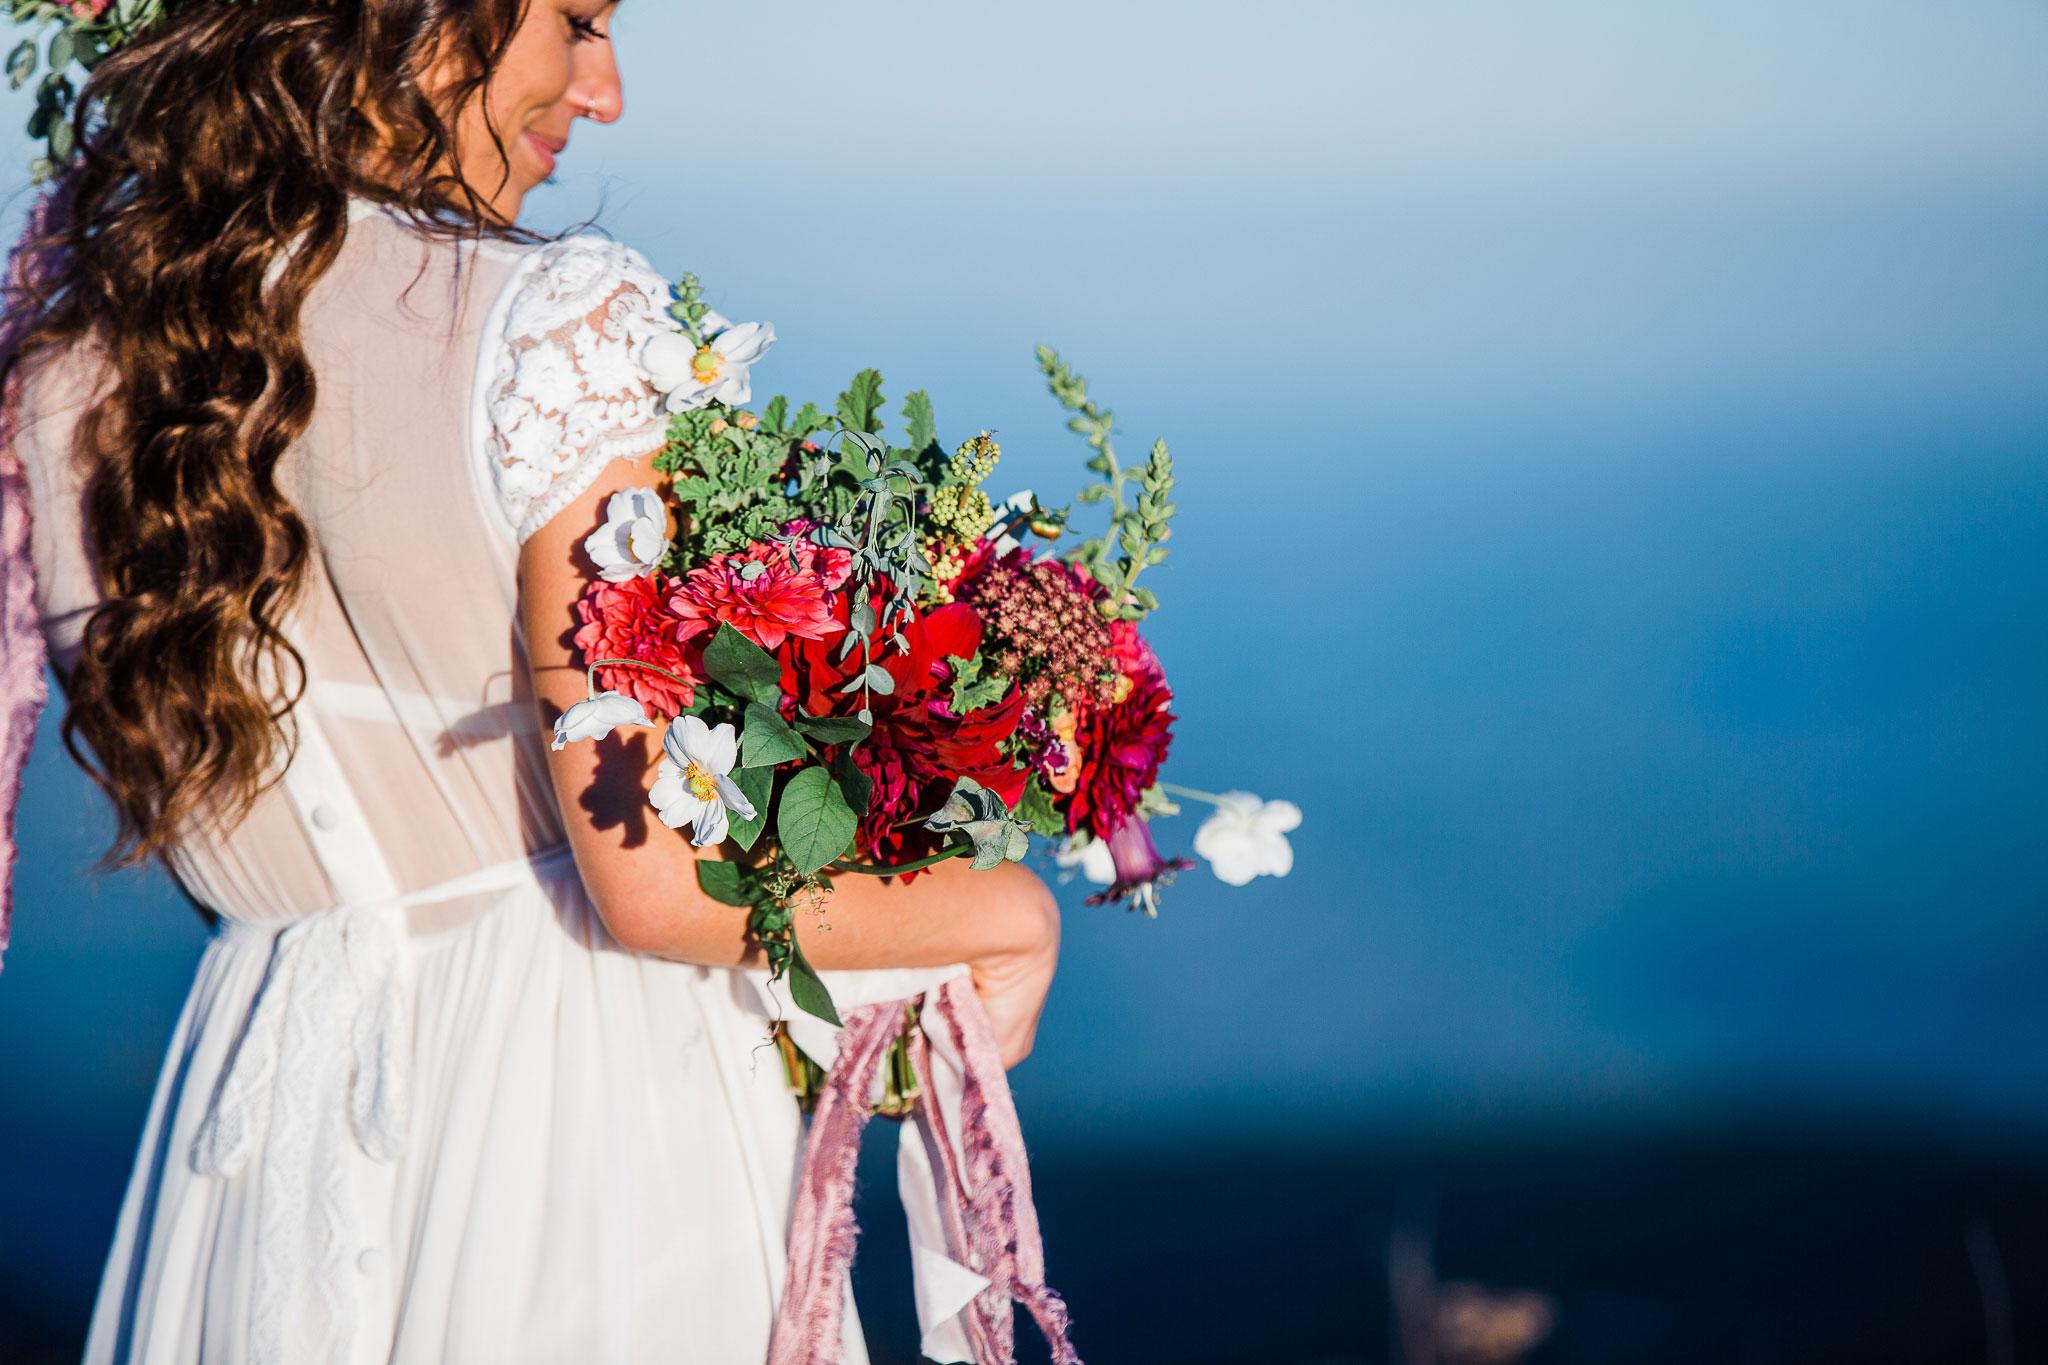 Boho bride with lush floral bouquet in the Blue Ridge Mountains.